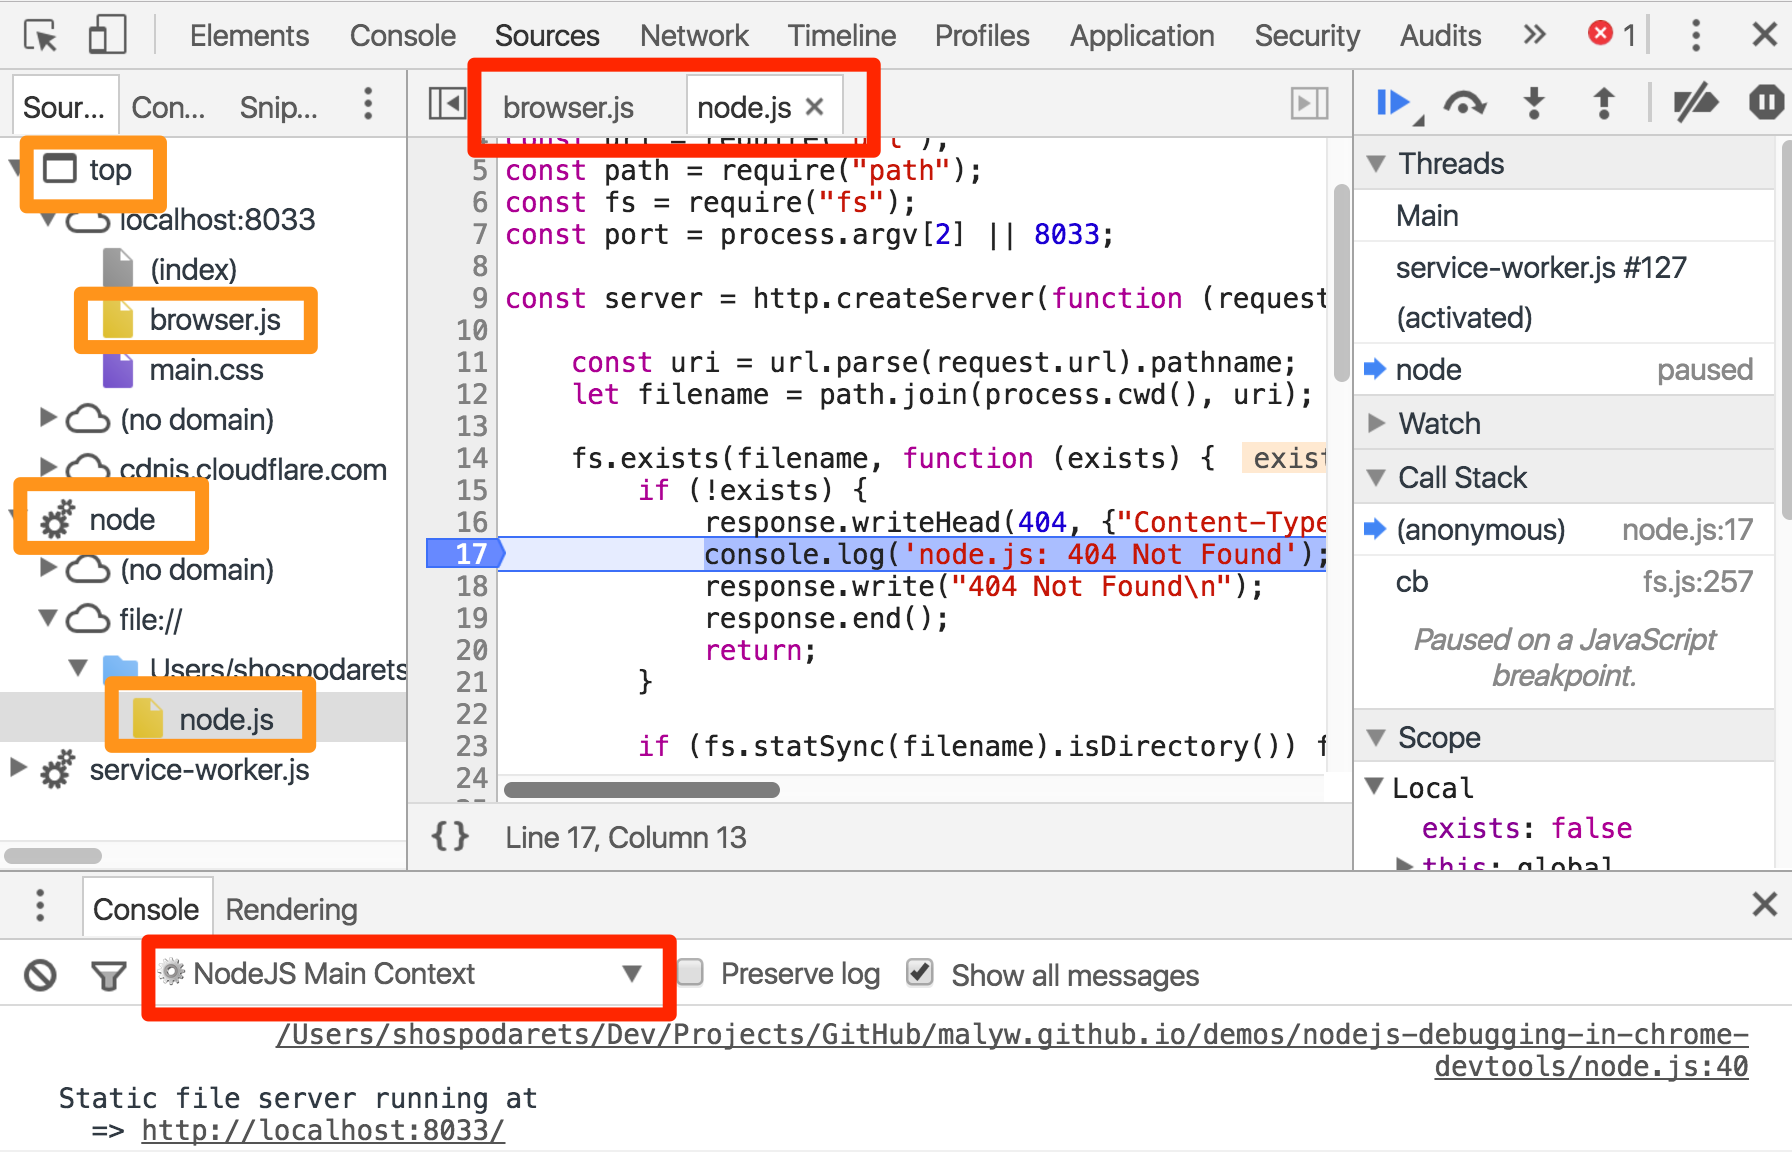 Node js debugging with Chrome DevTools (in parallel with